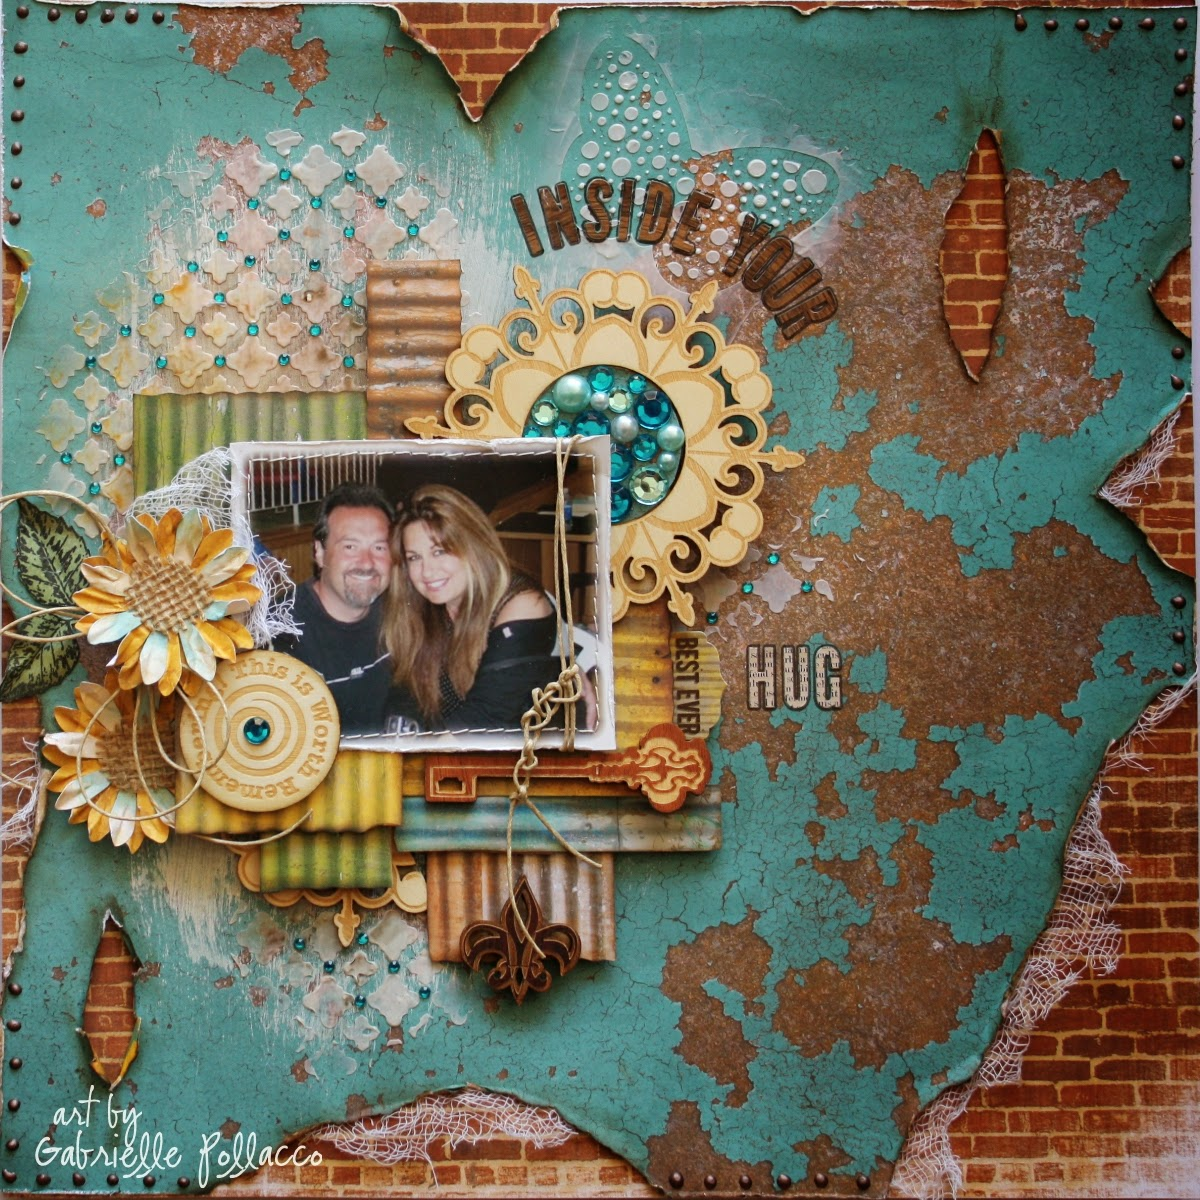 Scrapbook page by Gabrielle Pollacco using Bo Bunny's Safari collection papers and embellishments